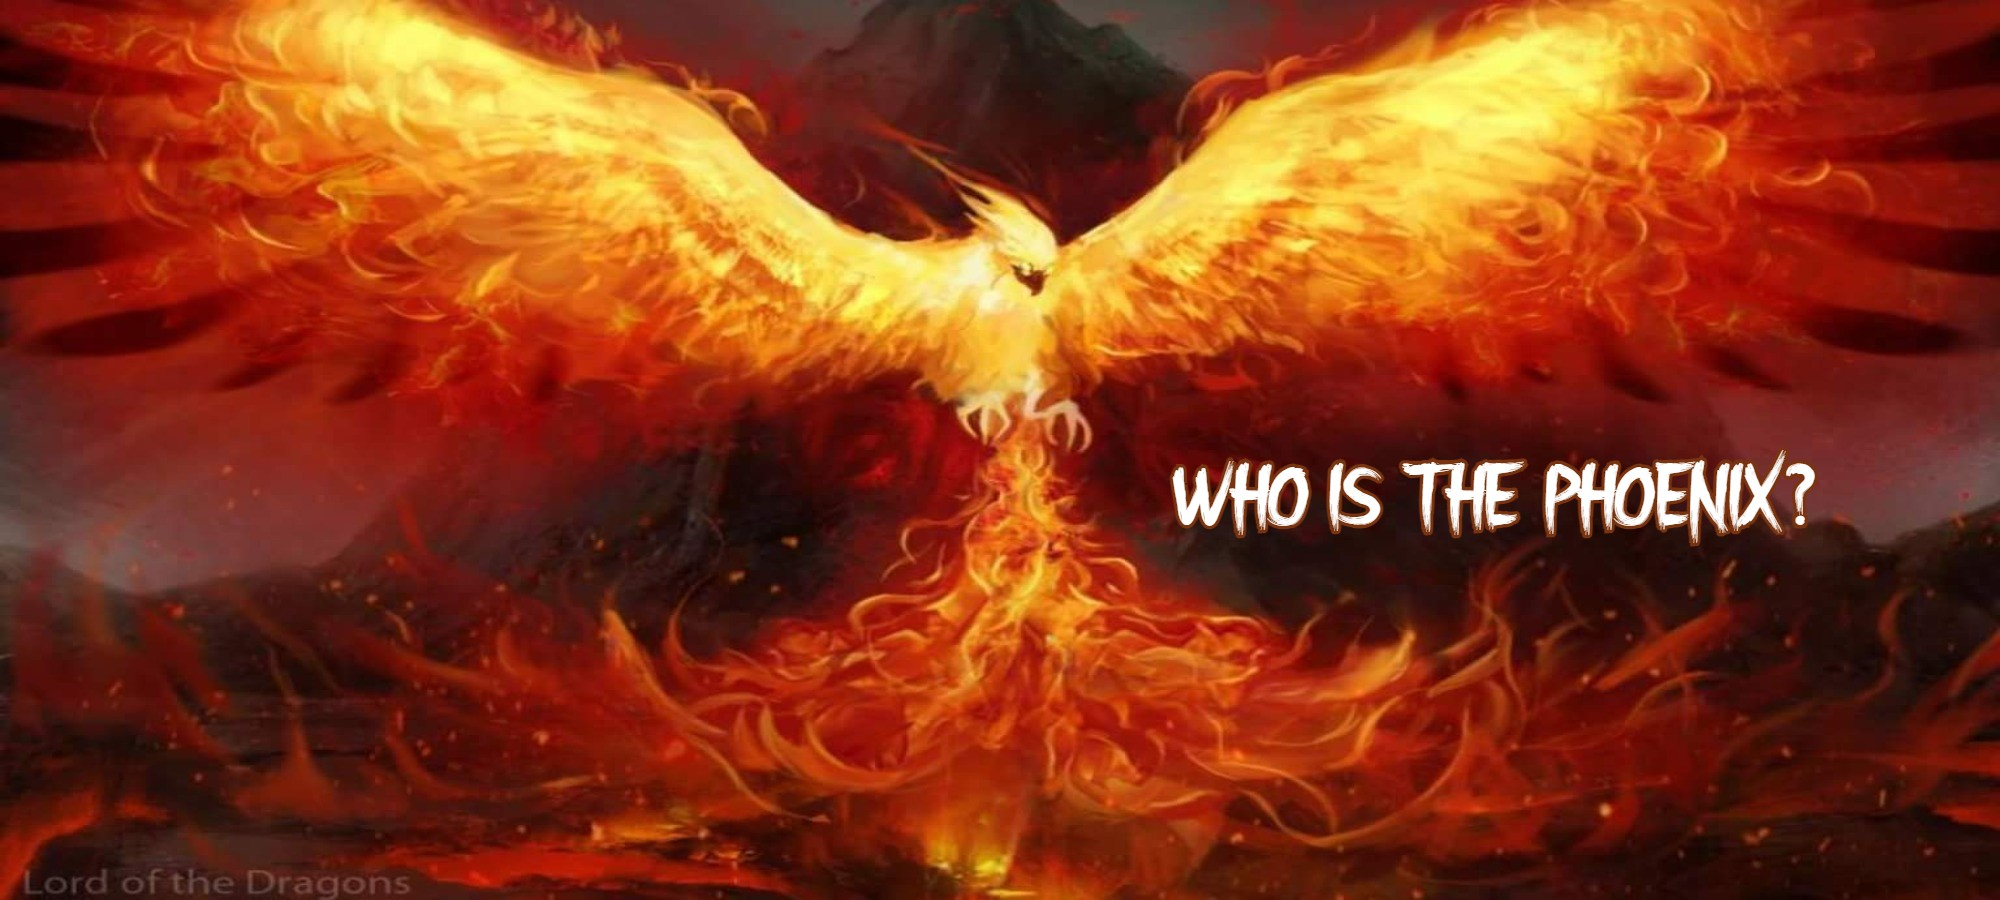 I am Dragon! Who is the Phoenix?